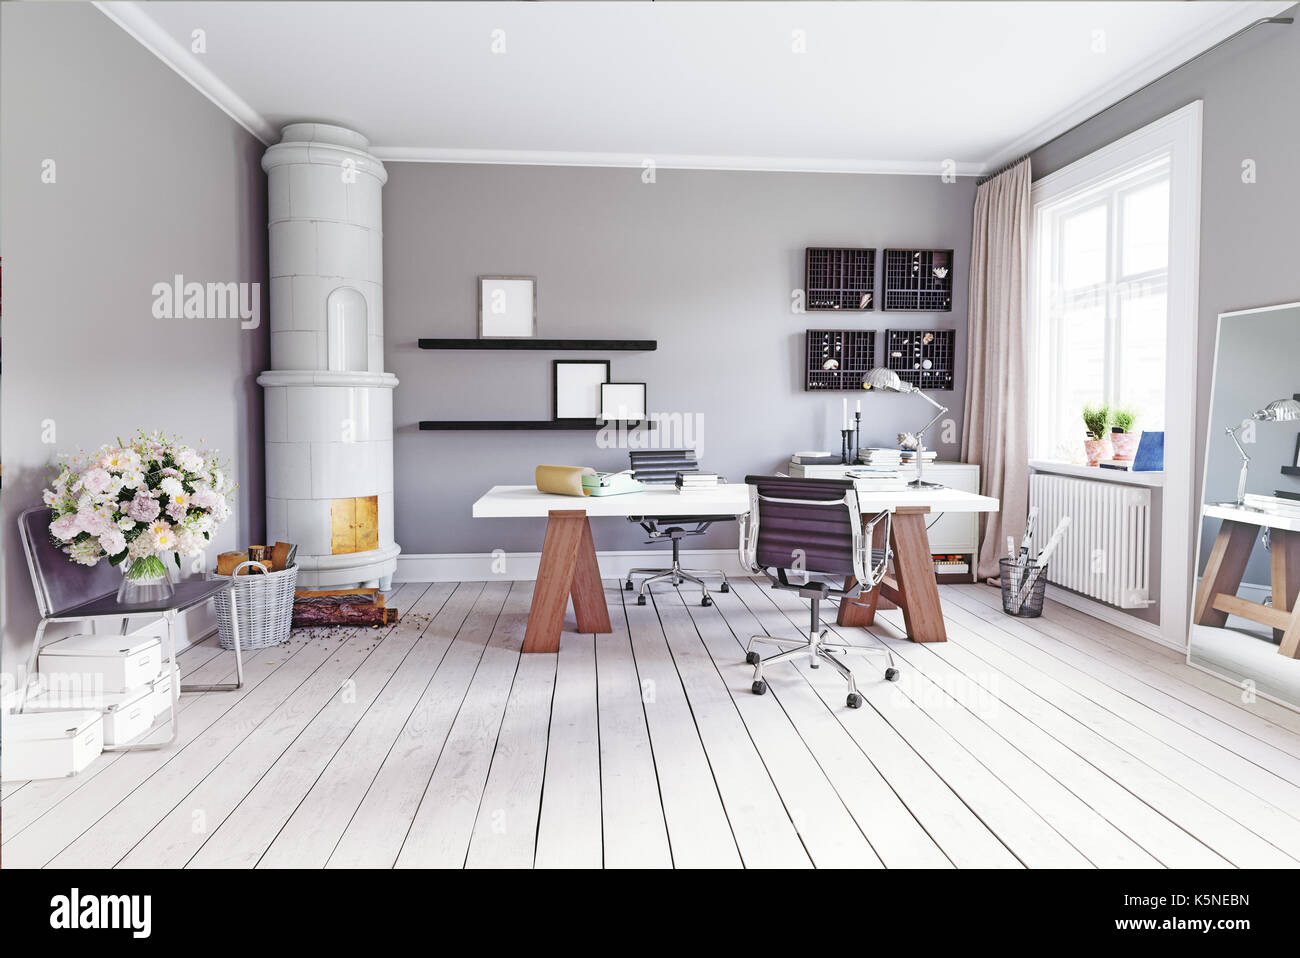 modern study room with  classic  swedish stove, table and  armchairs. 3d concept rendering - Stock Image